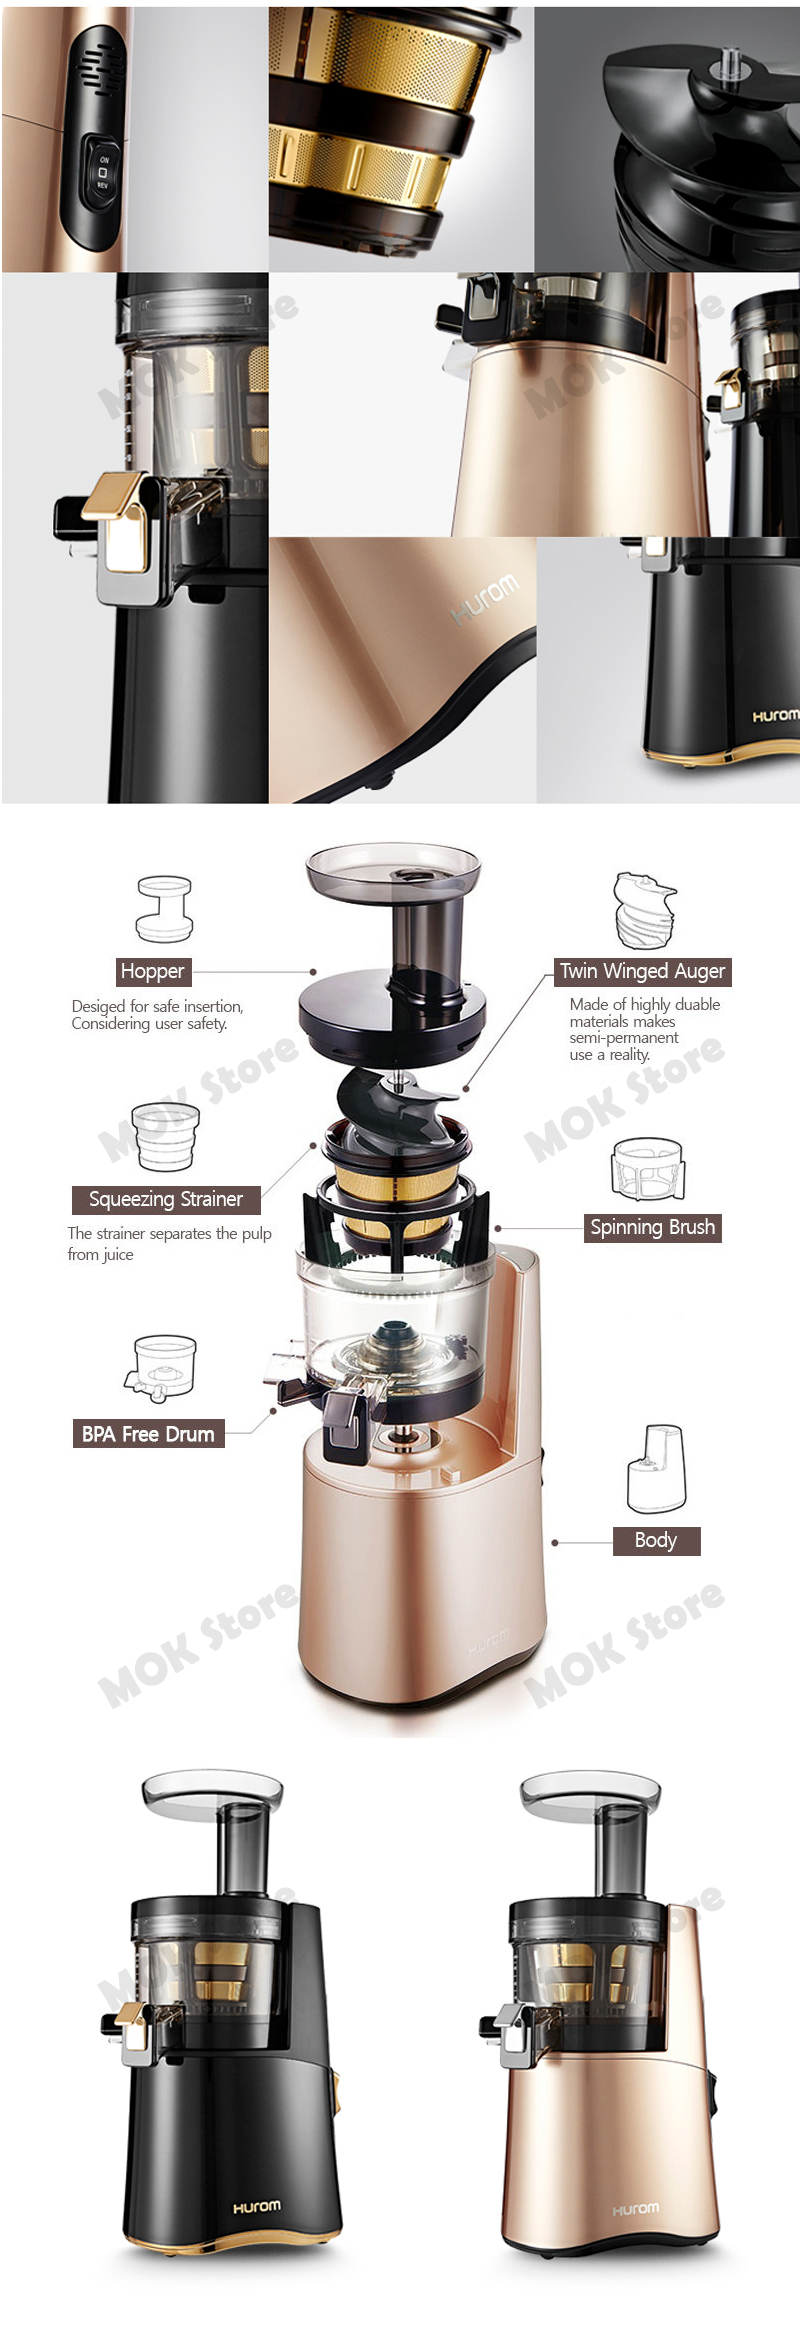 Hurom H Aa Slow Juicer Rose Gold : HUROM ALPHA H-AA LBF17 Premium Slow Cold Press Juicer Squeeze Extractor RoseGold eBay